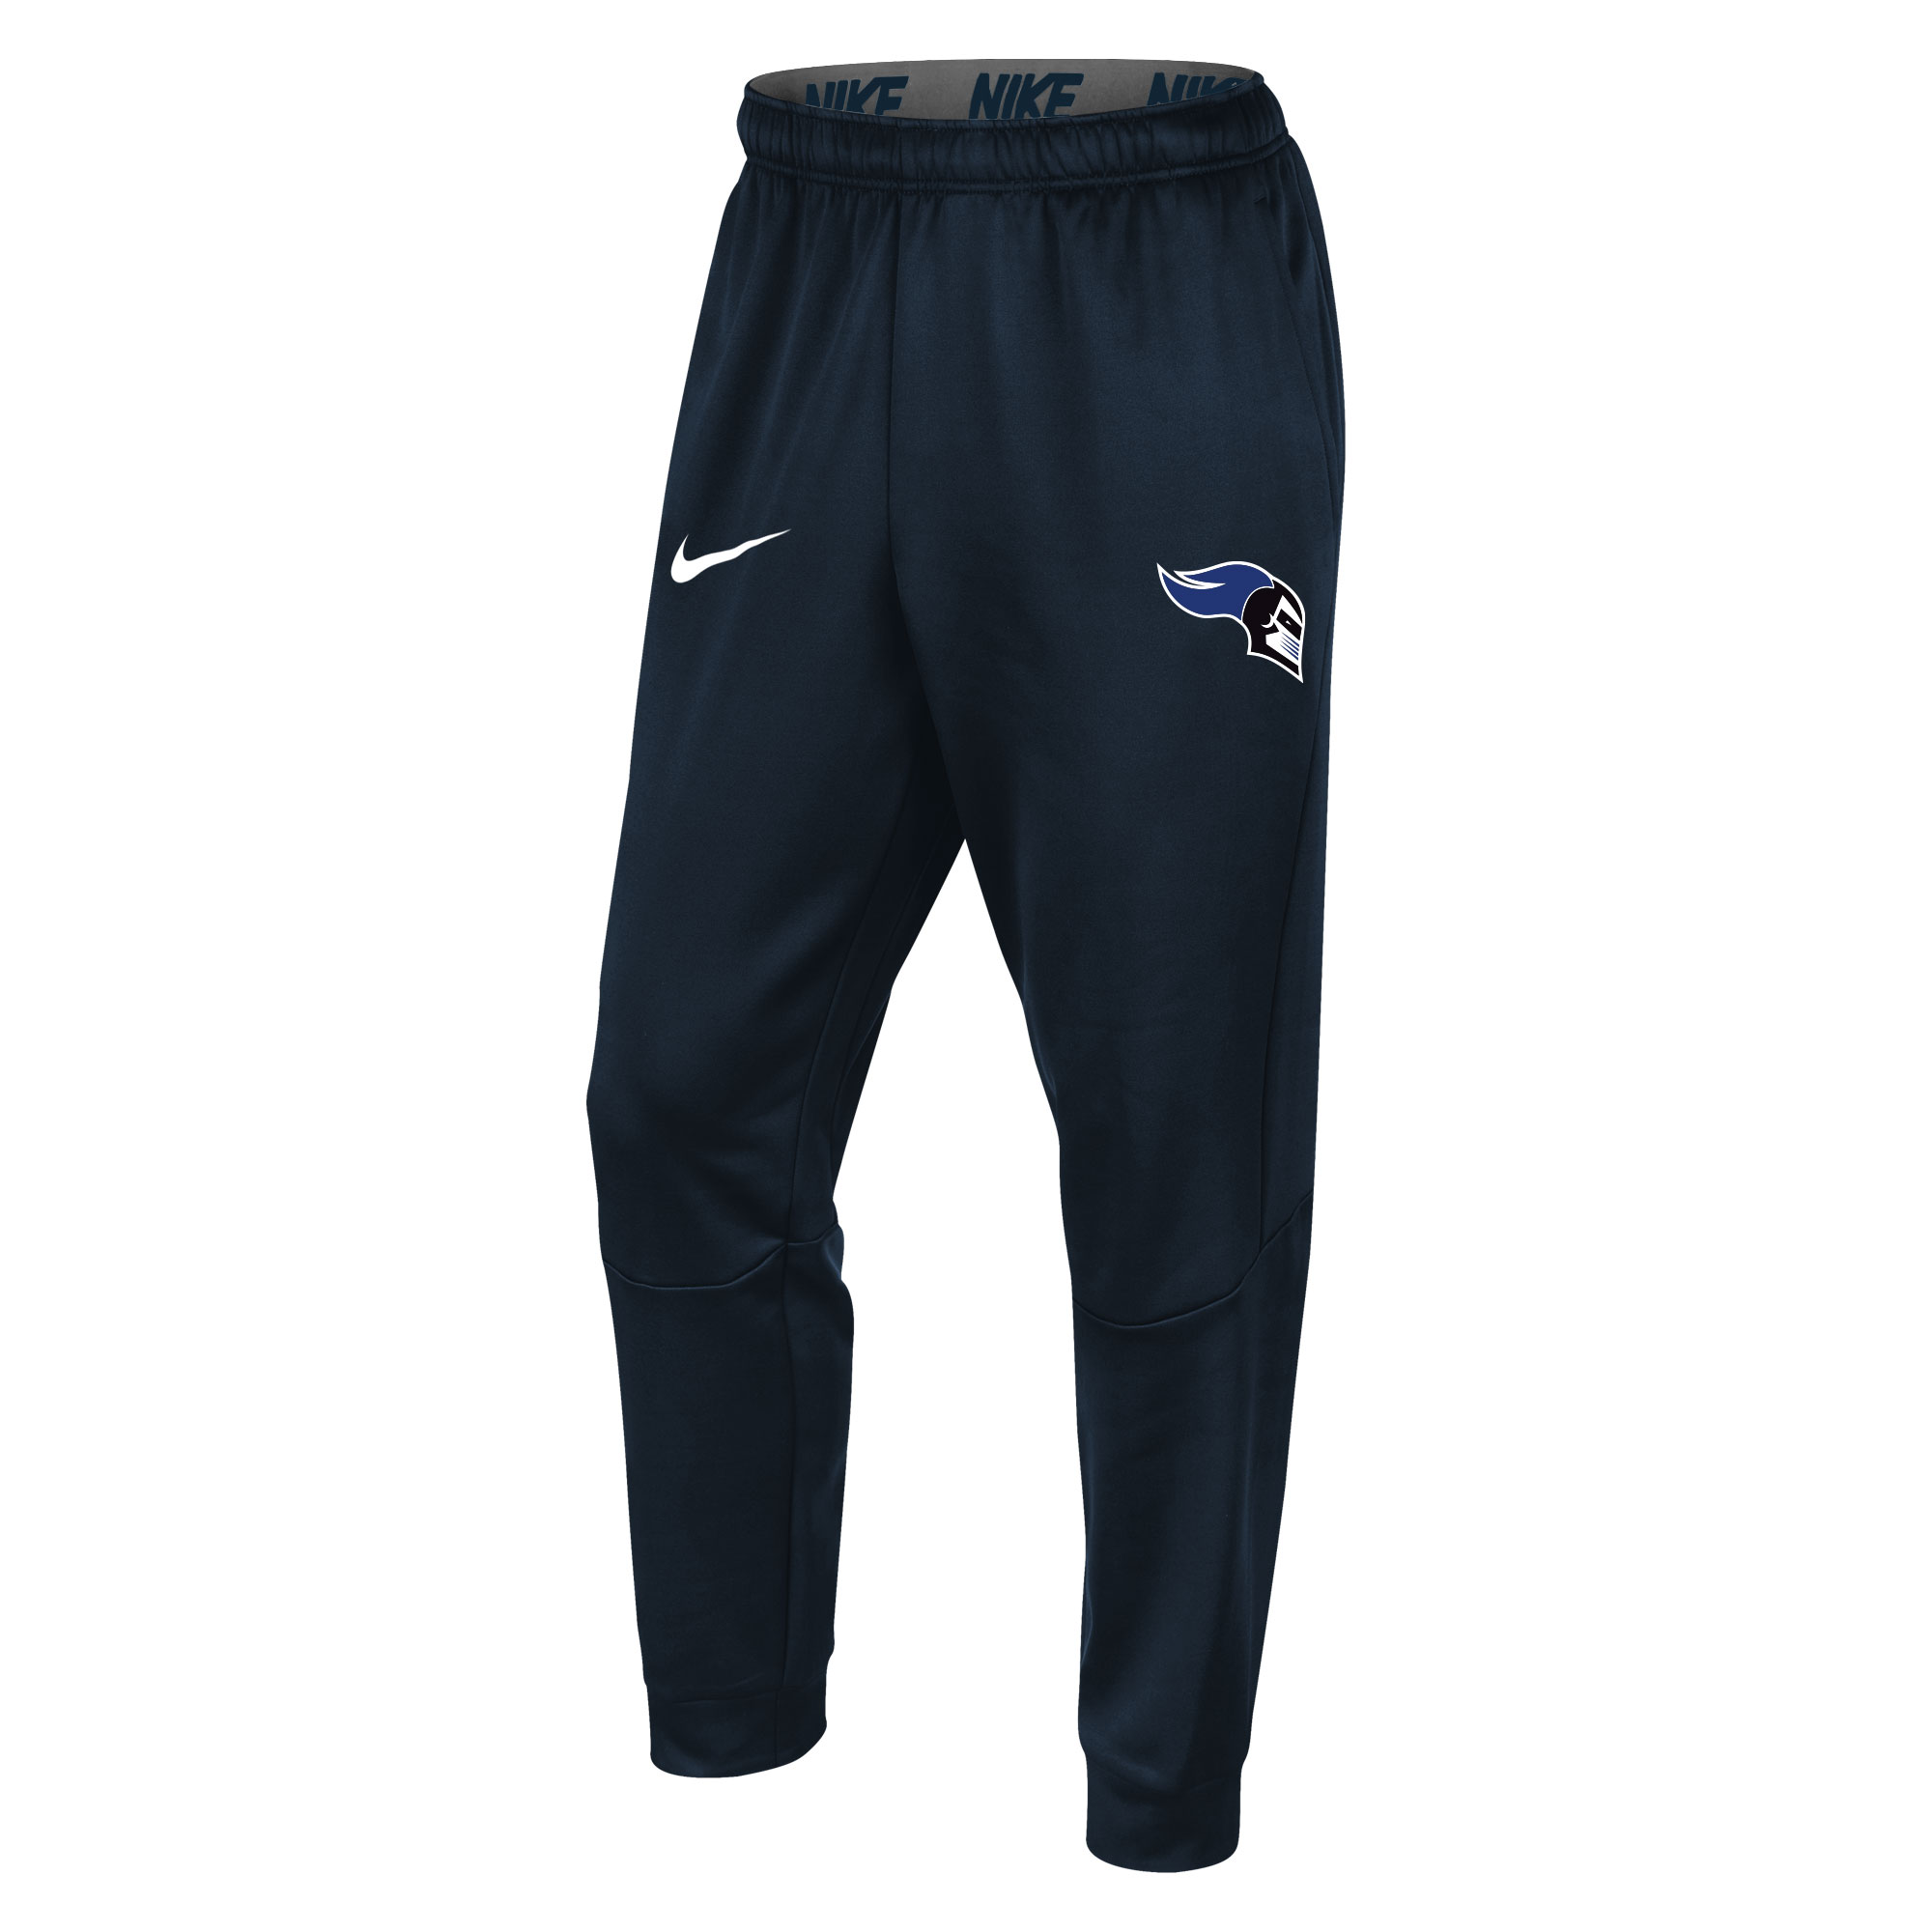 Nike Therma Fit Pant - Navy